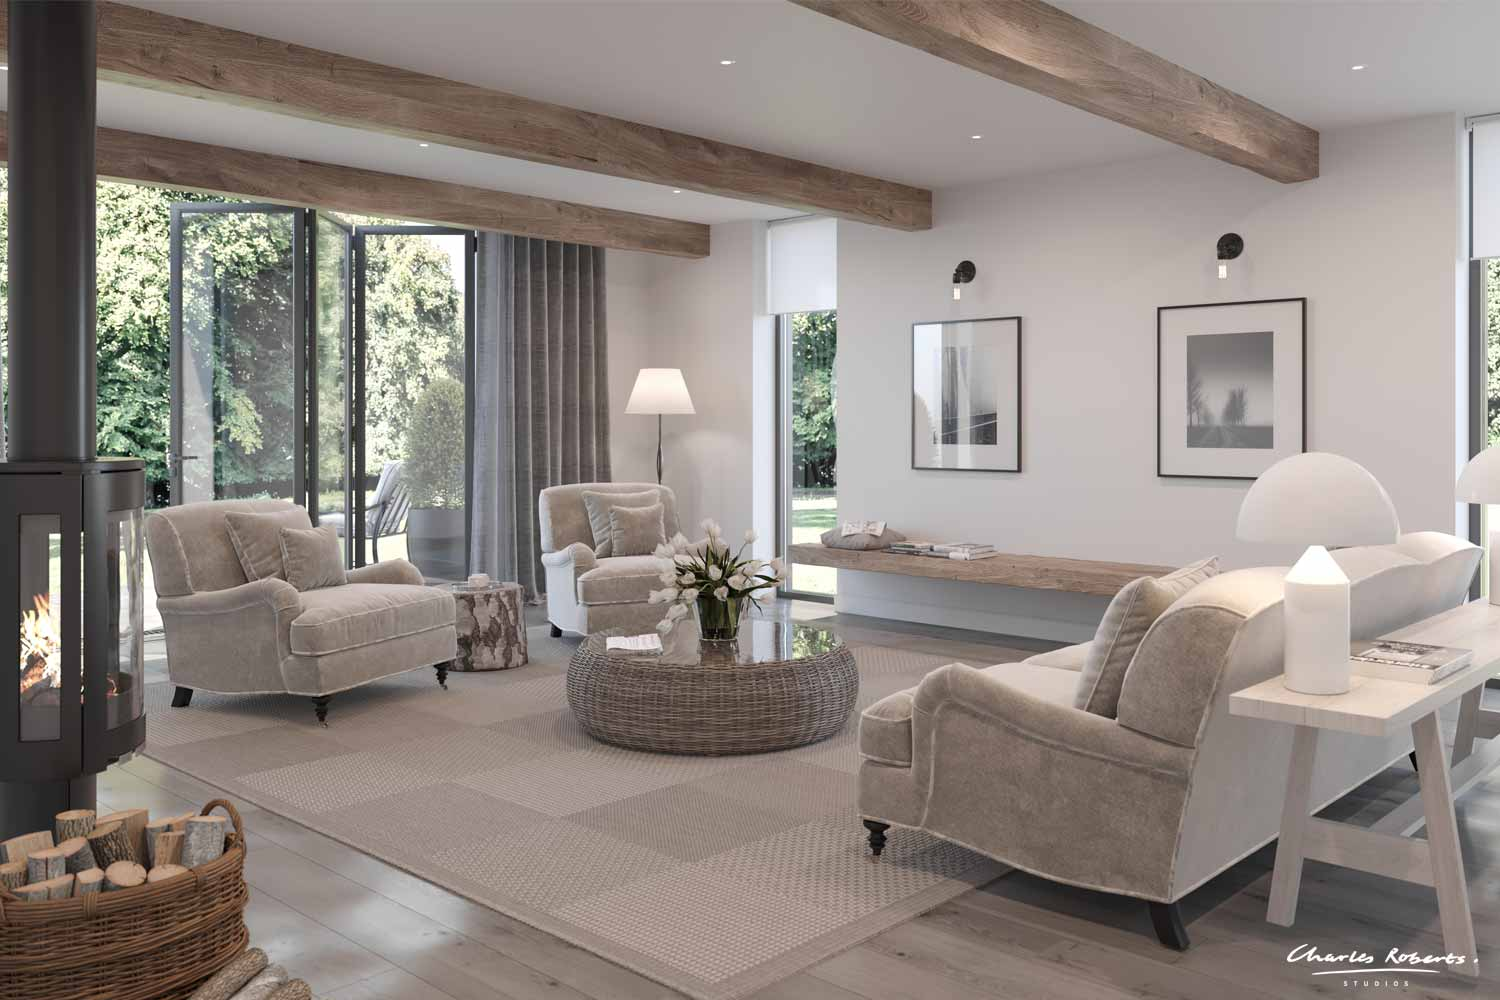 Artists impression barn conversion interior design